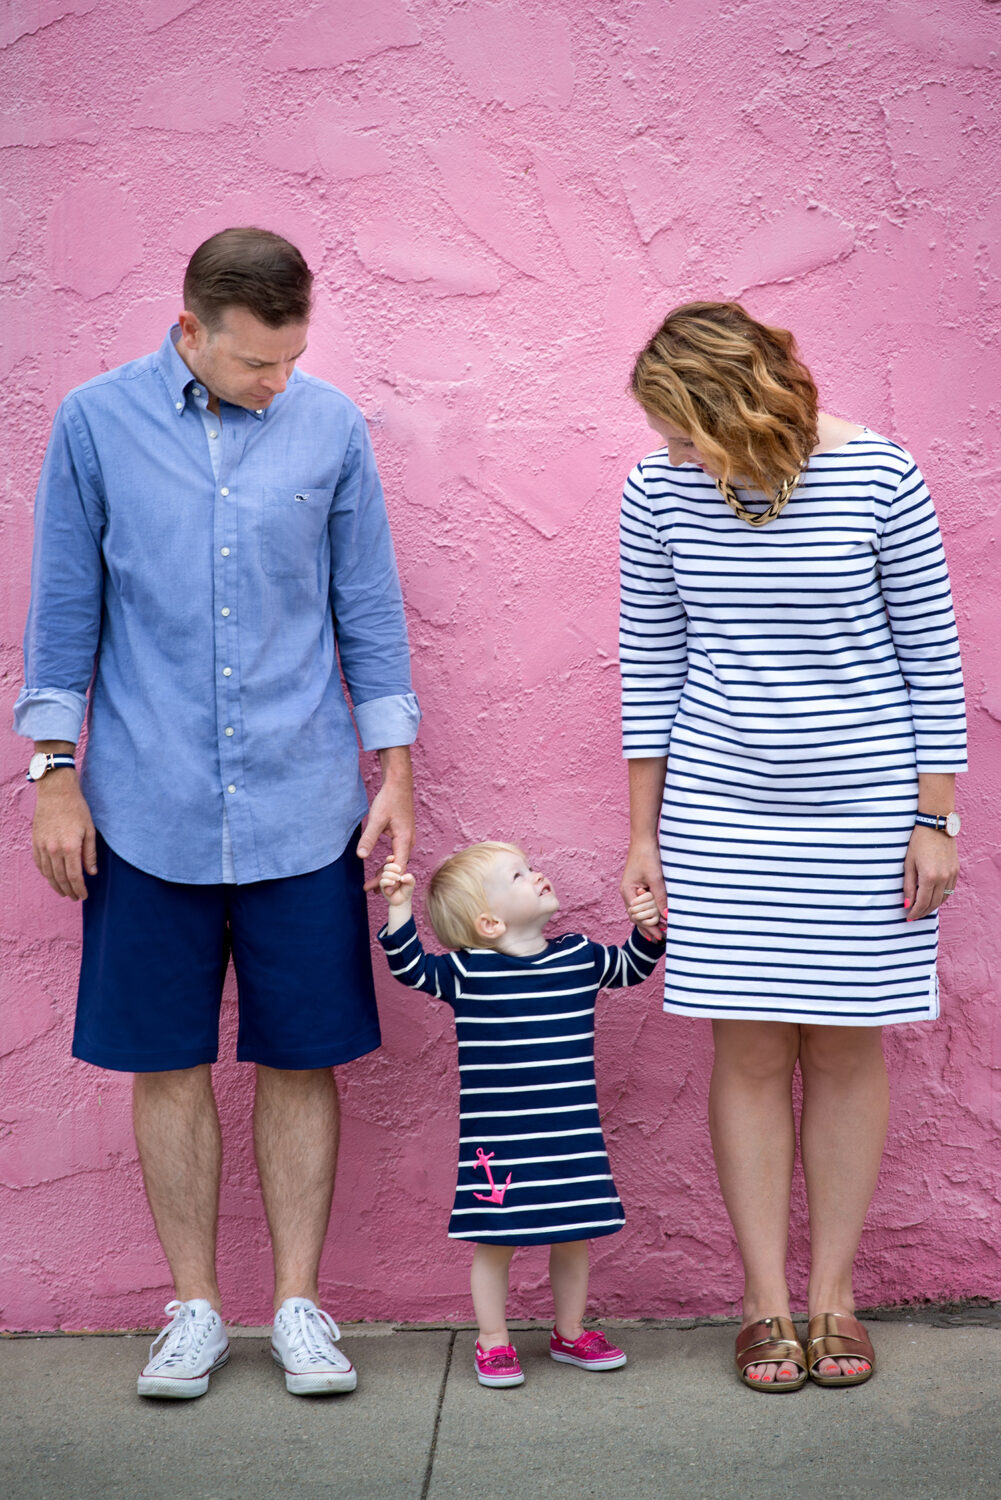 Wondering what to wear in family photos? This nautical family photo session is filled with navy stripes and pink accents.....perfect for a fun family photo shoot!